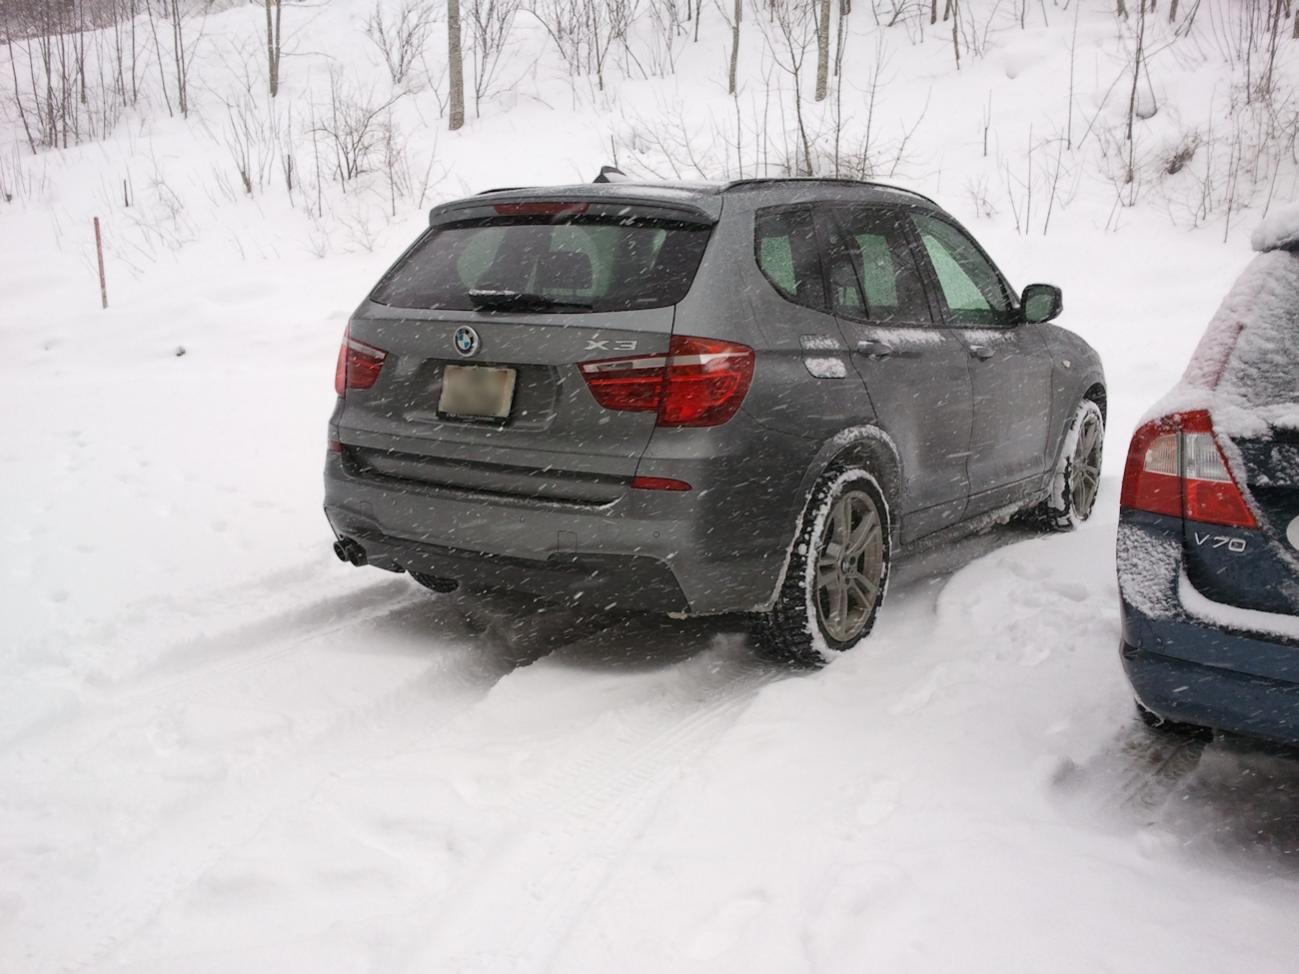 http://x3.xbimmers.com/forums/attachment.php?attachmentid=621587&stc=1&d=1324363791